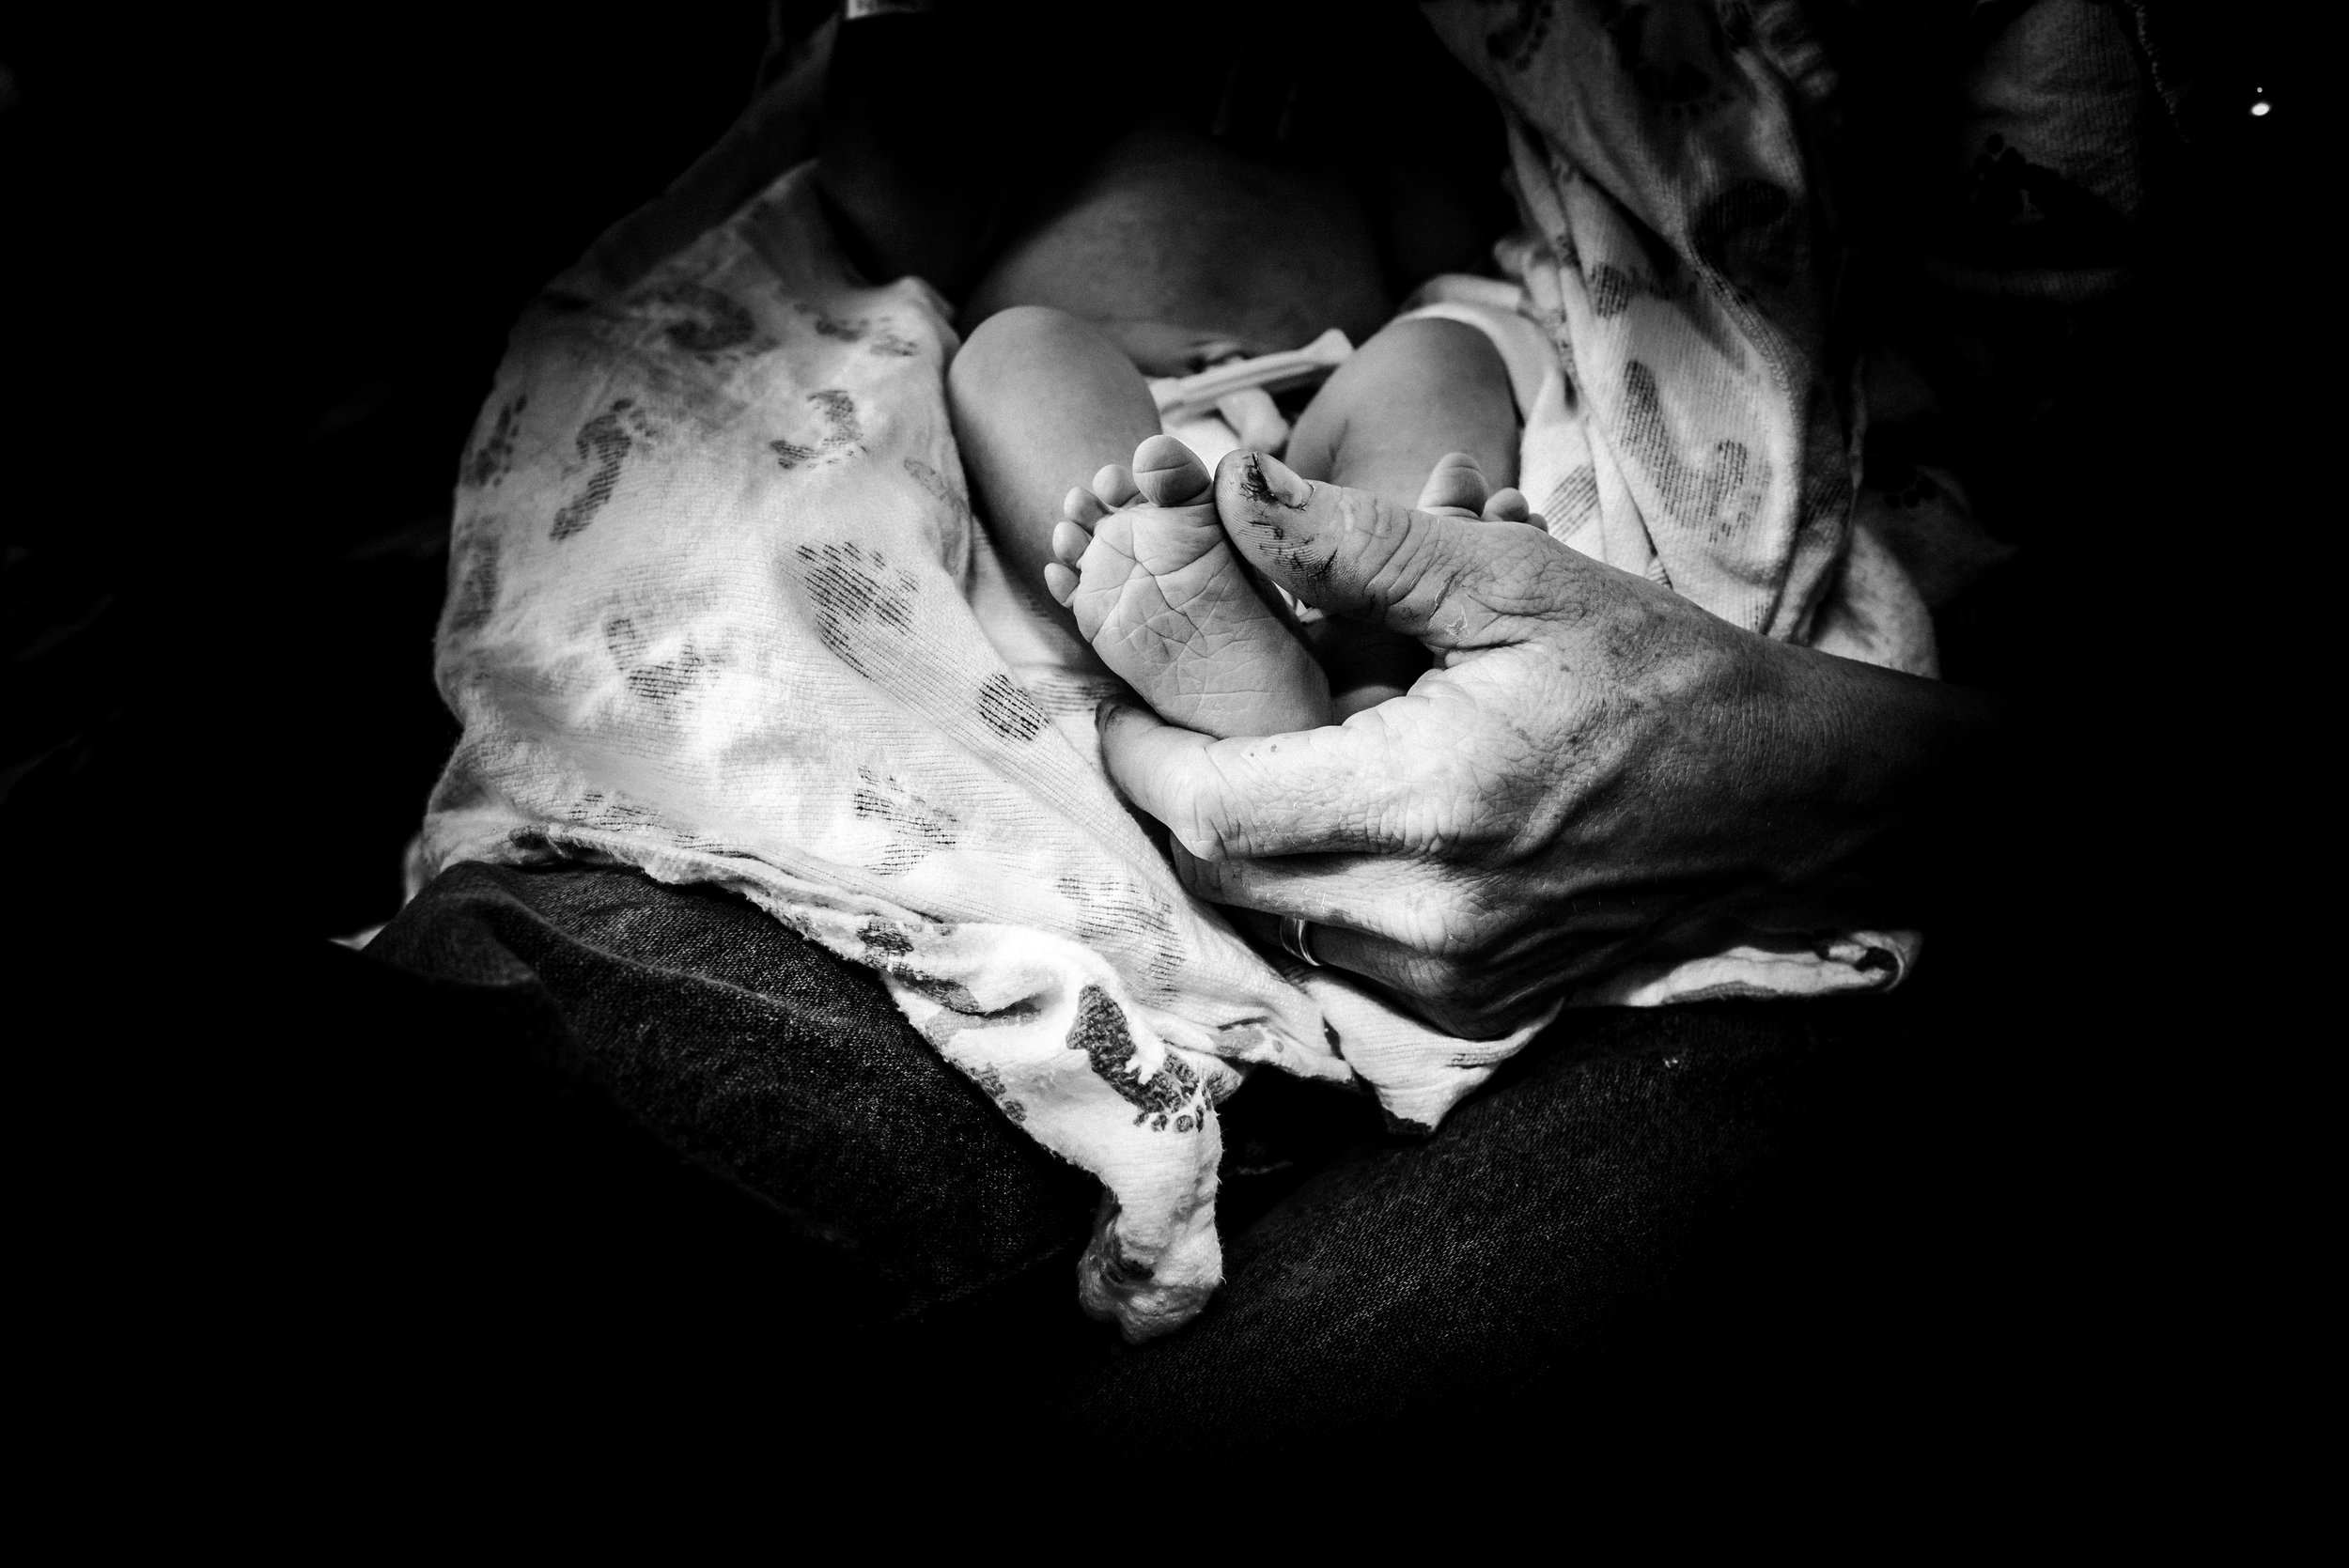 Black and white image of newborn baby's feet in daddy's hands